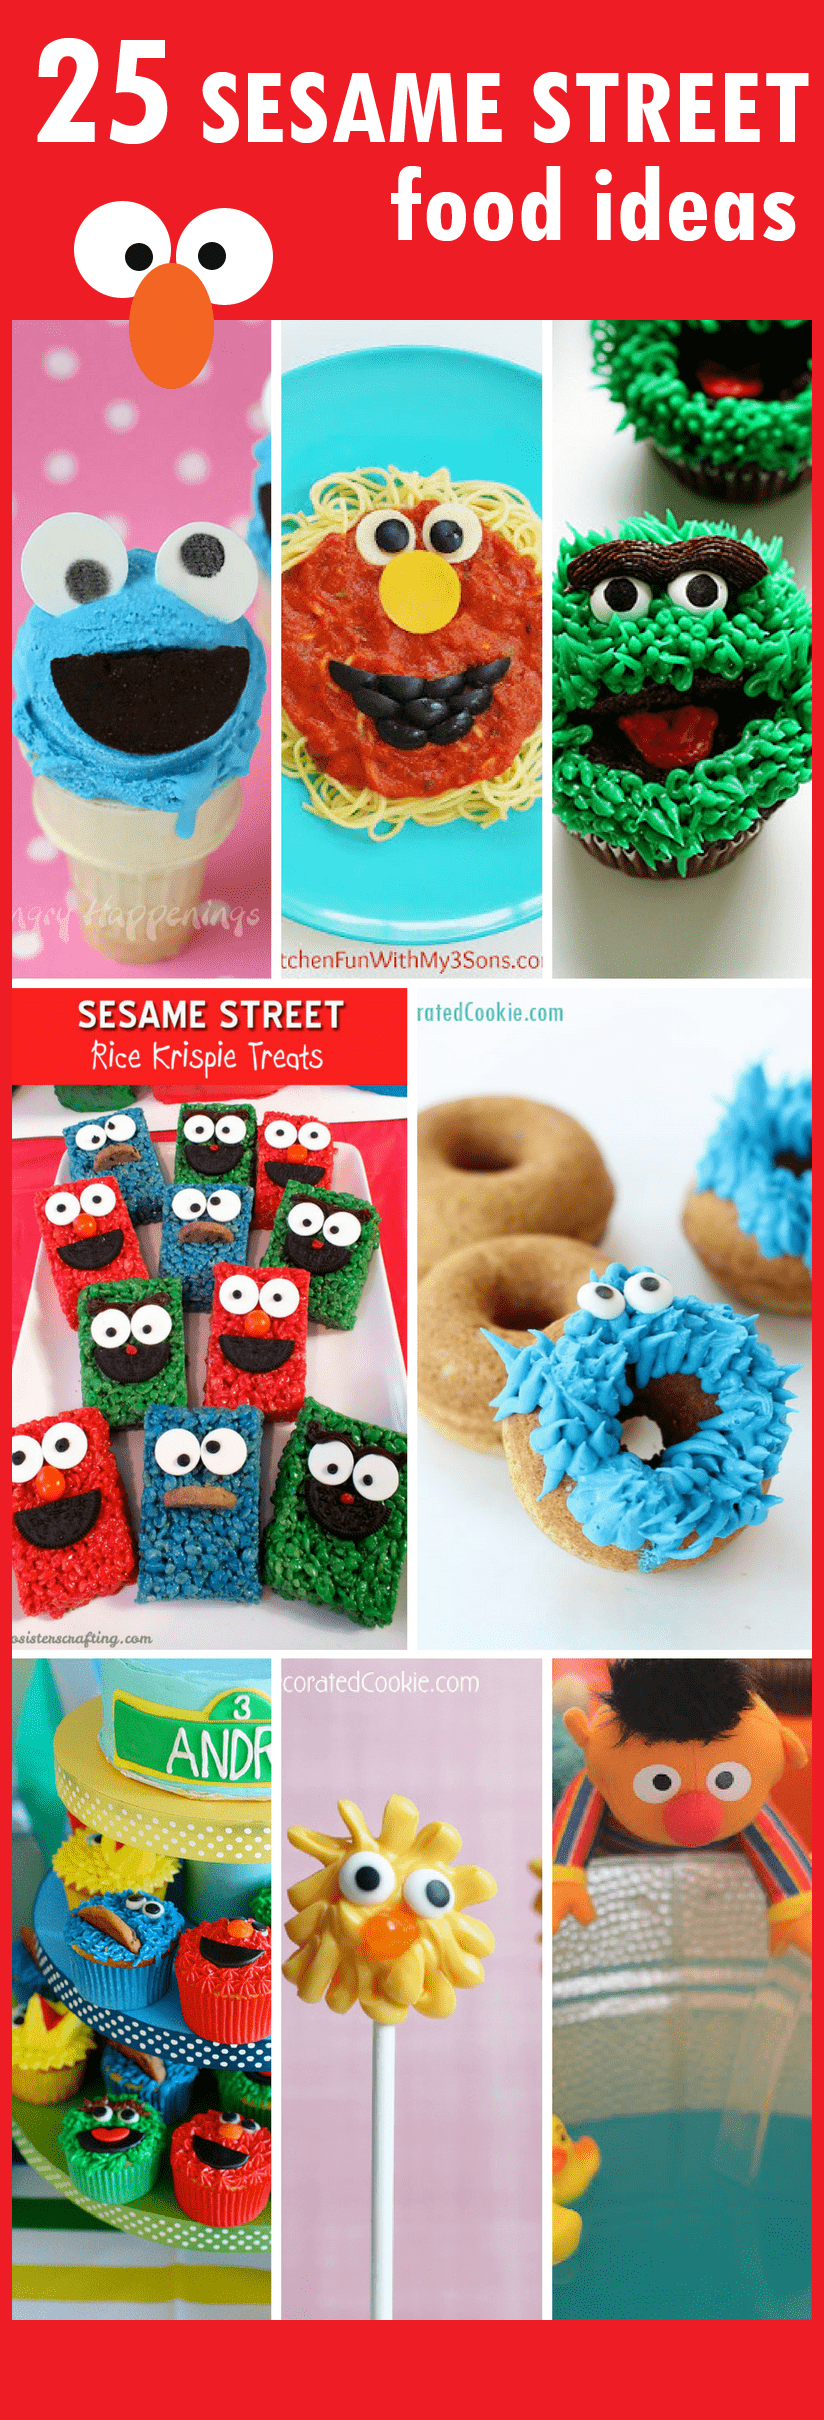 25 Sesame Street food ideas for your Sesame Street party